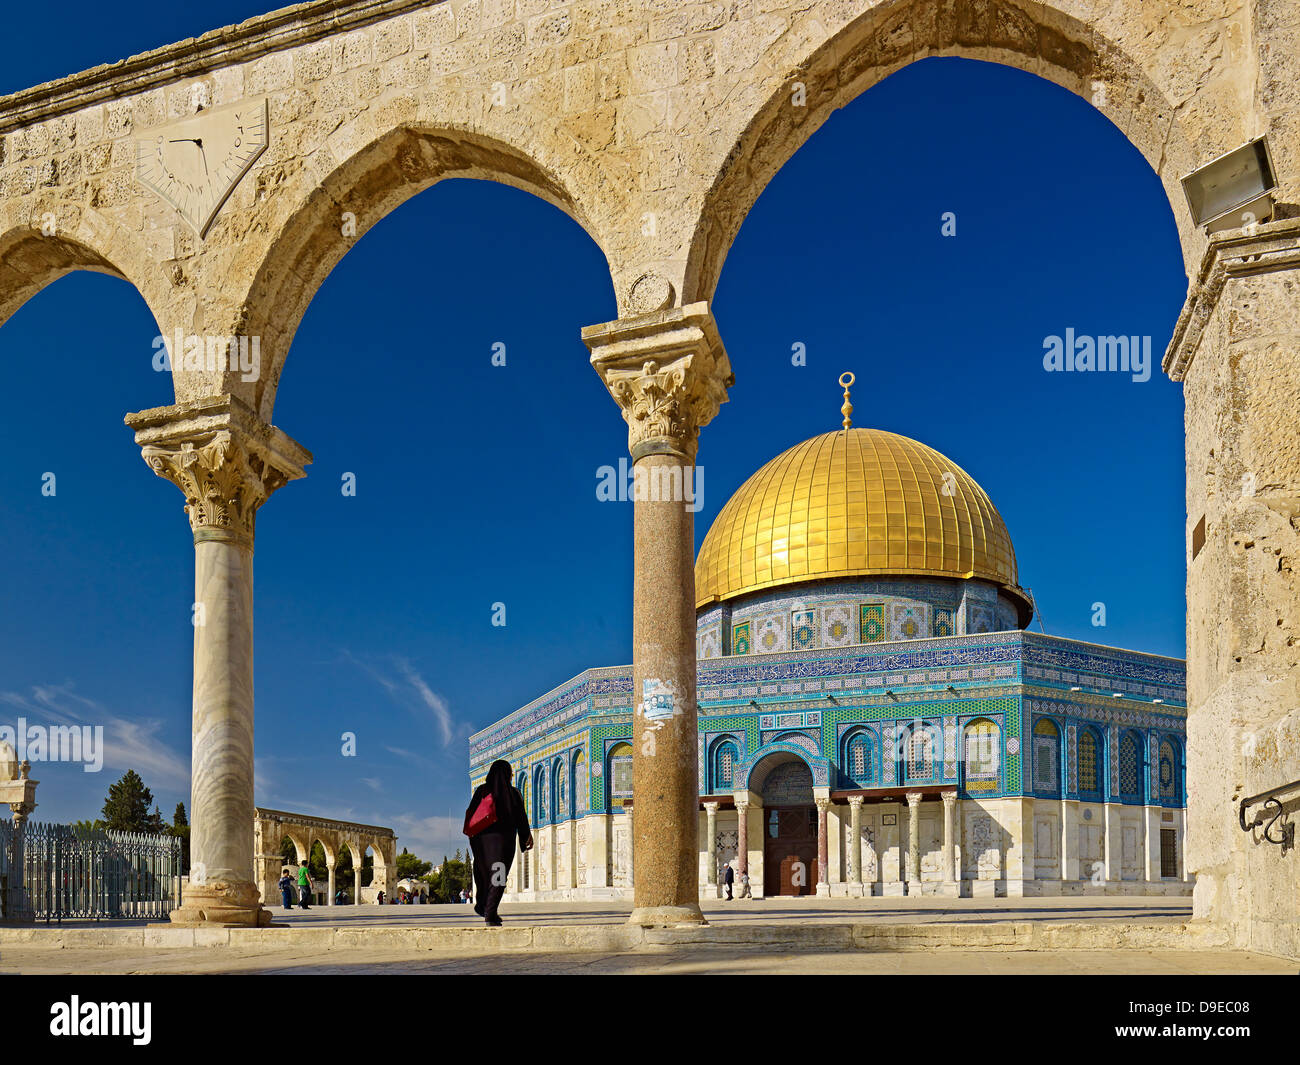 Dome of the Rock on the Temple Mount in Jerusalem, Israel - Stock Image